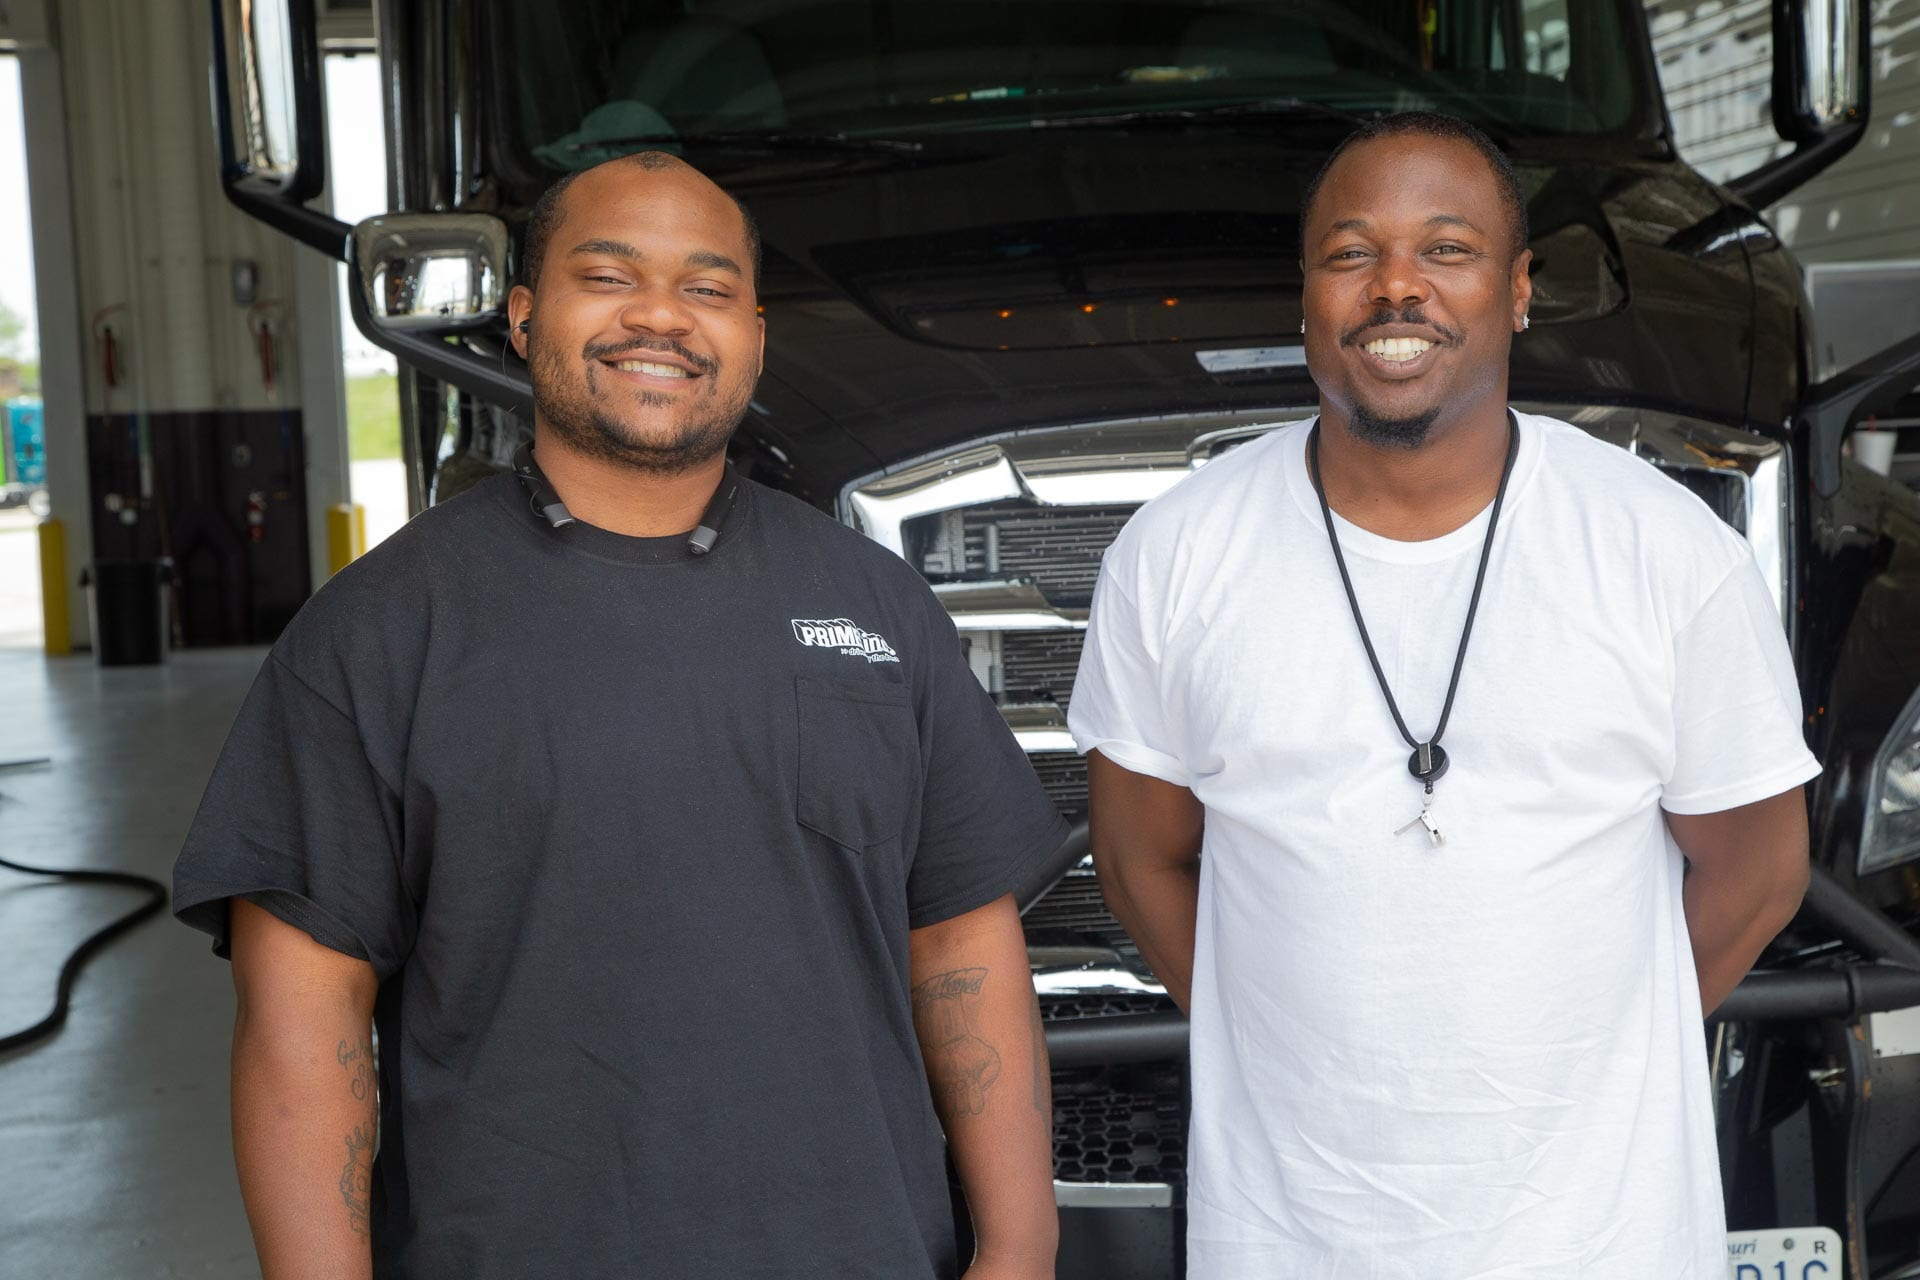 Two Prime truck drivers posing for a picture in front of a black Freightliner semi-truck.